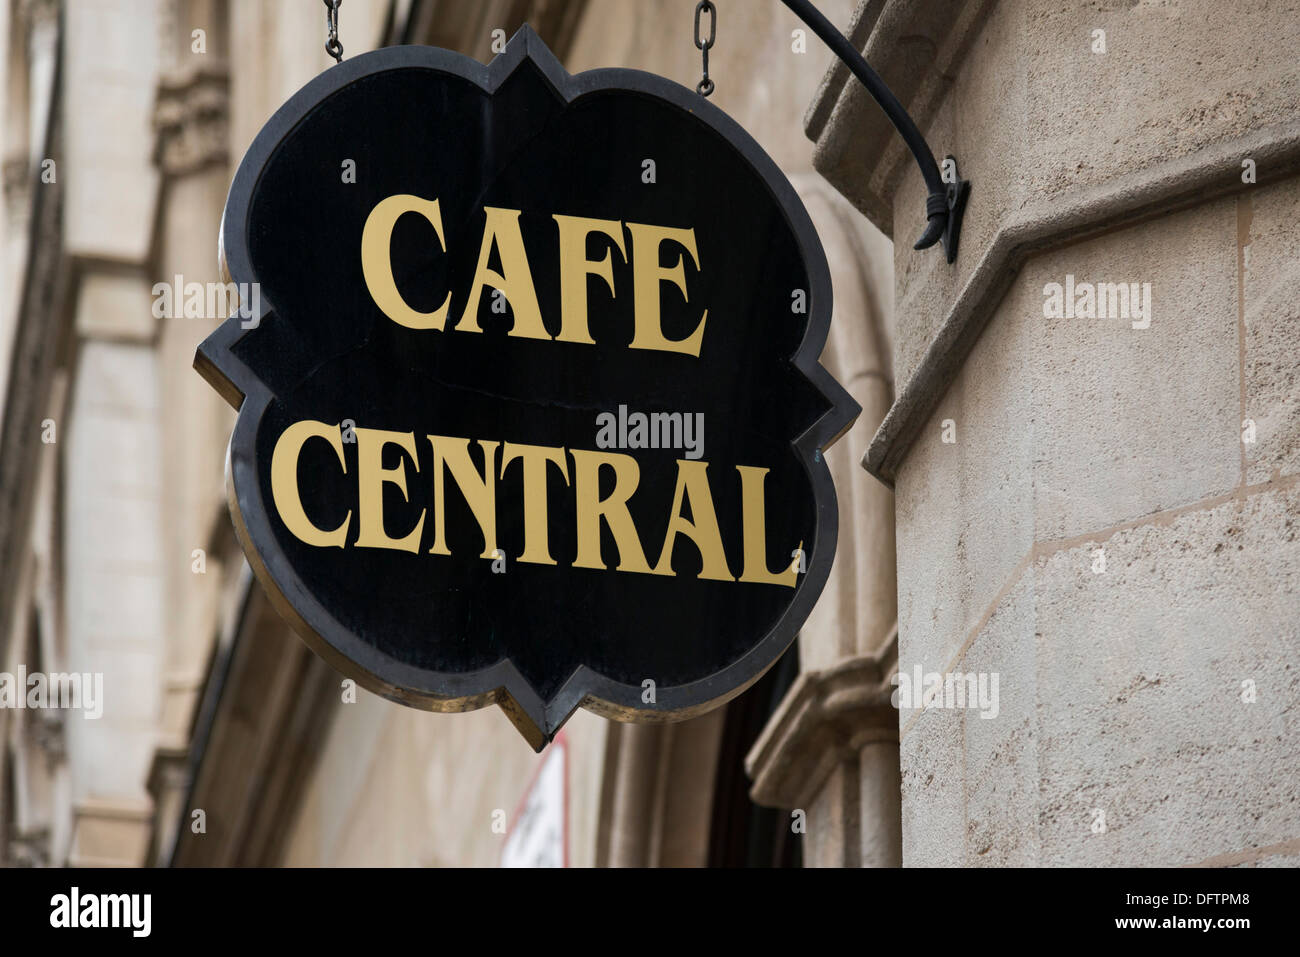 Cafe Central, sign, Innere Stadt, Vienna, Vienna State, Austria - Stock Image